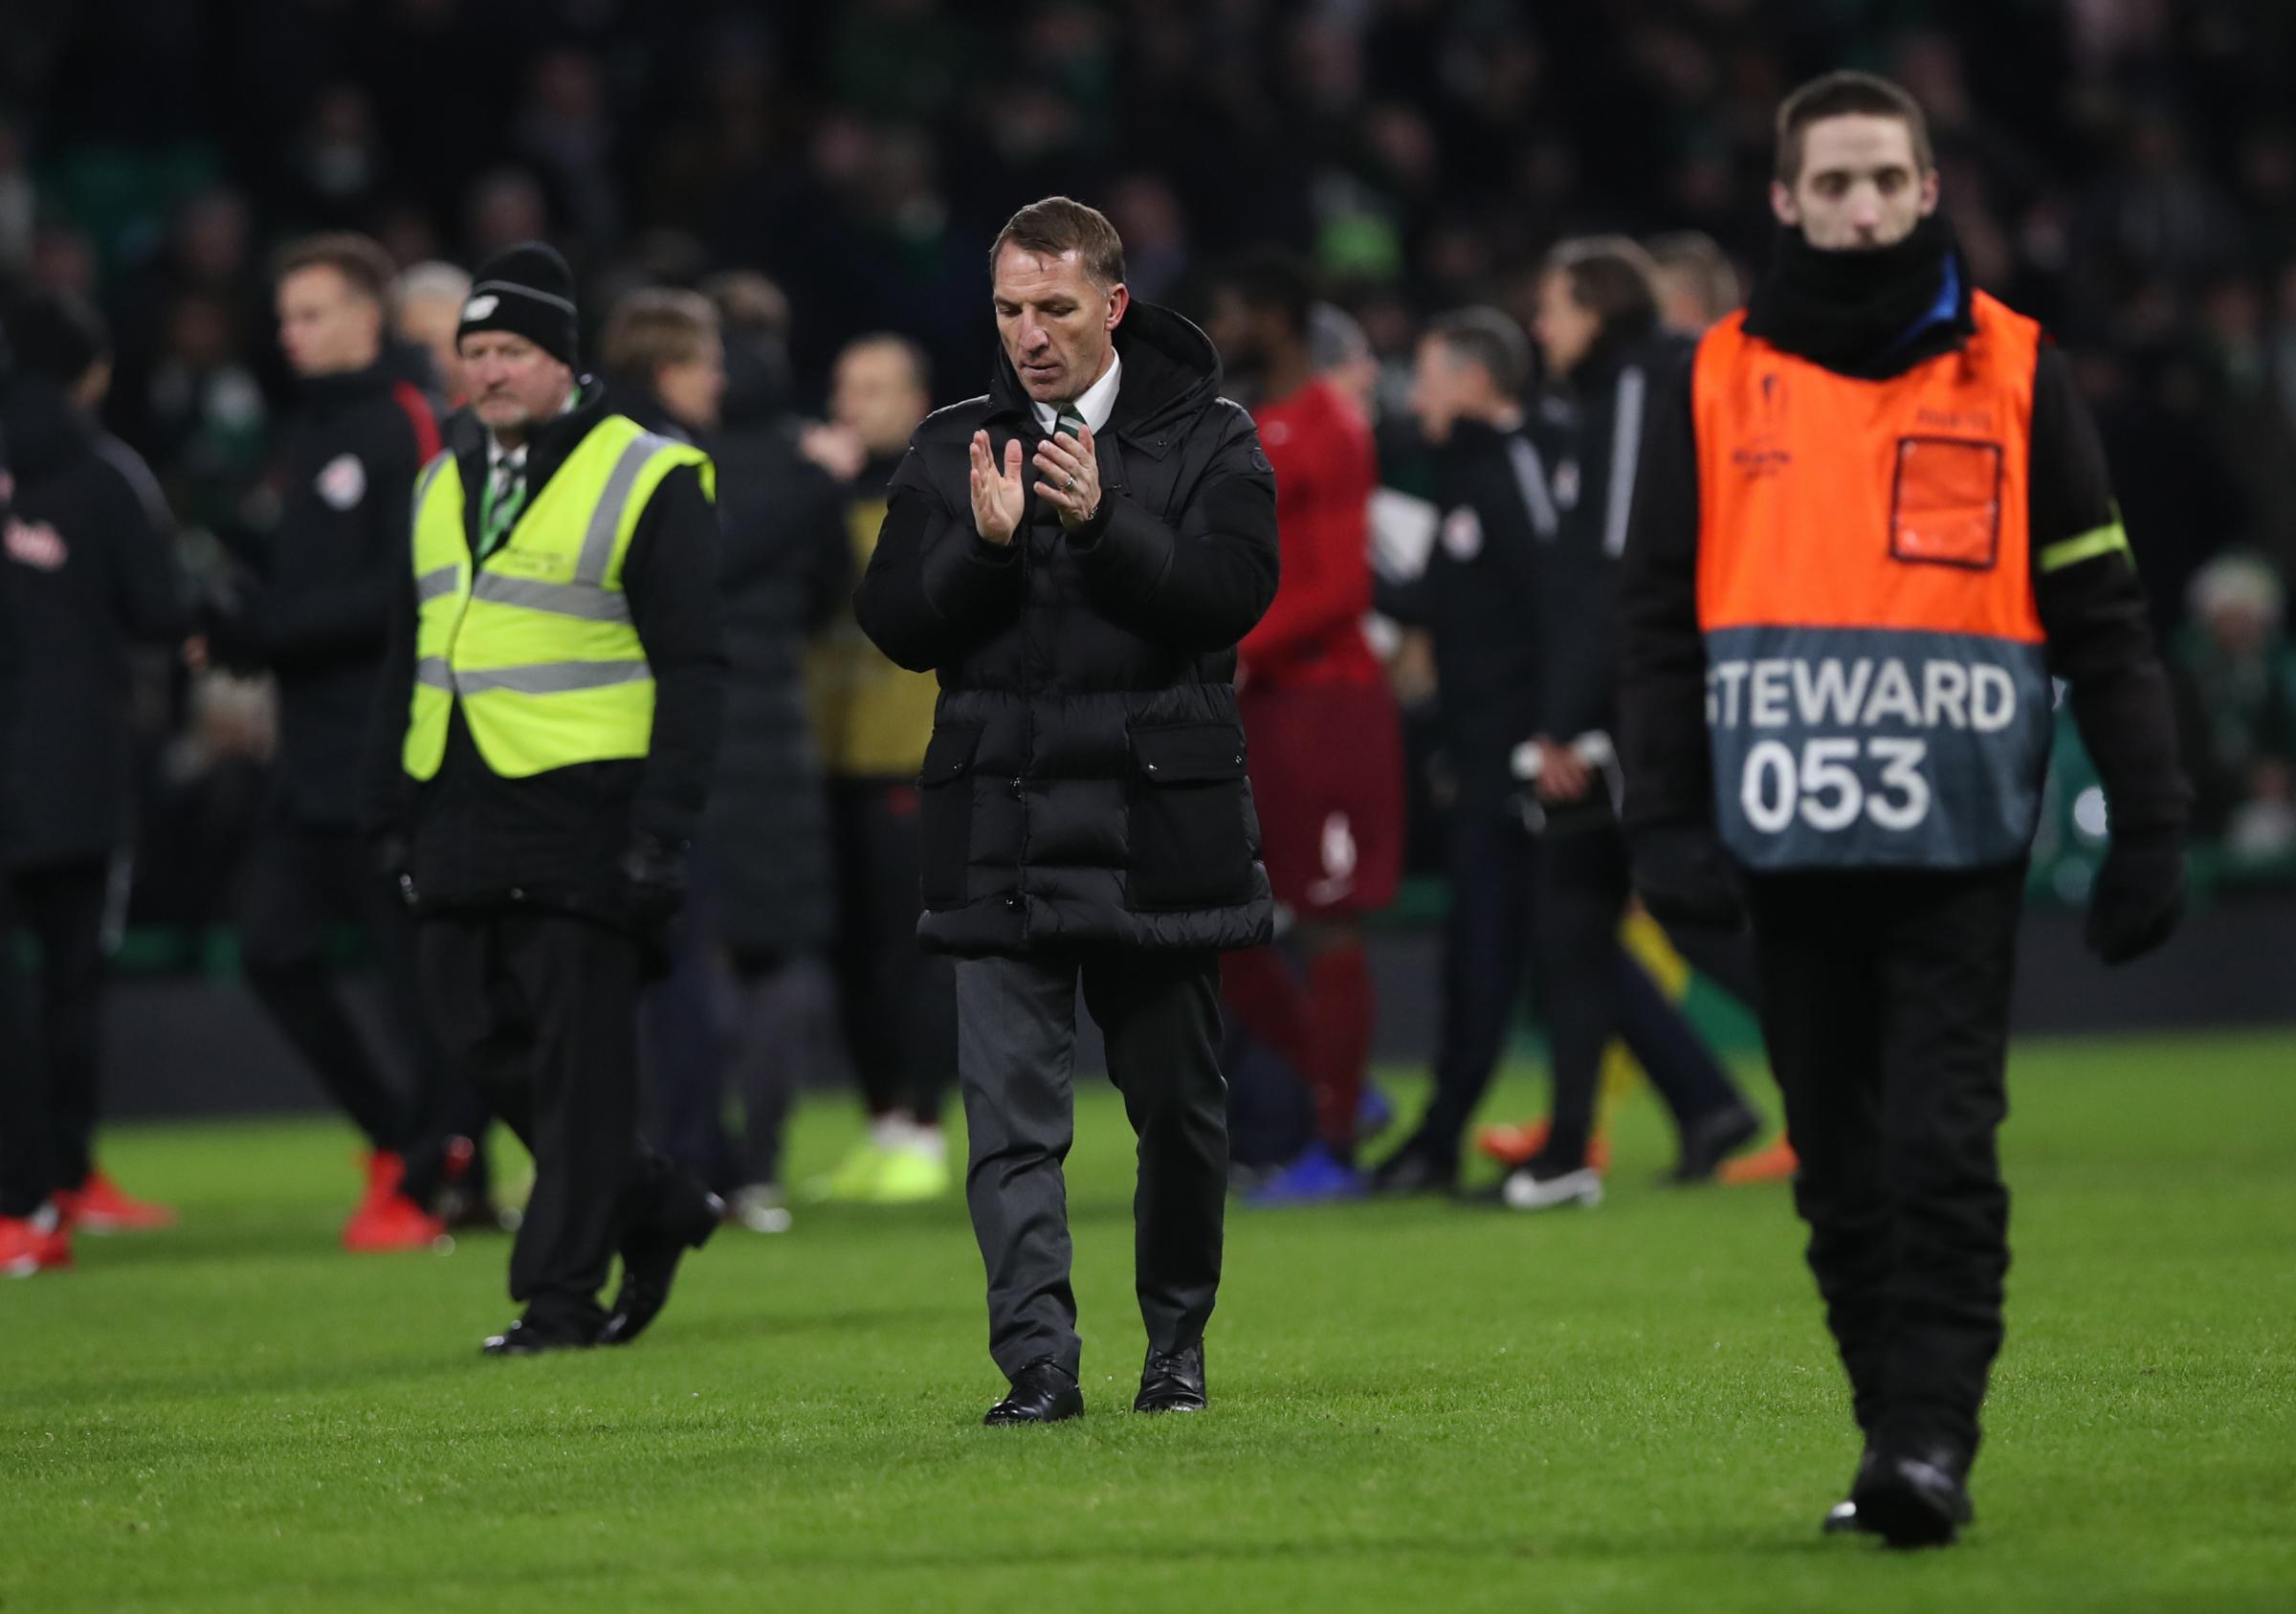 GLASGOW, SCOTLAND - DECEMBER 13: Celtic manager Brendan Rodgers applauds the fans during the UEFA Europa League Group B match between Celtic and RB Salzburg at Celtic Park on December 13, 2018 in Glasgow, United Kingdom. (Photo by Ian MacNicol/Getty Image